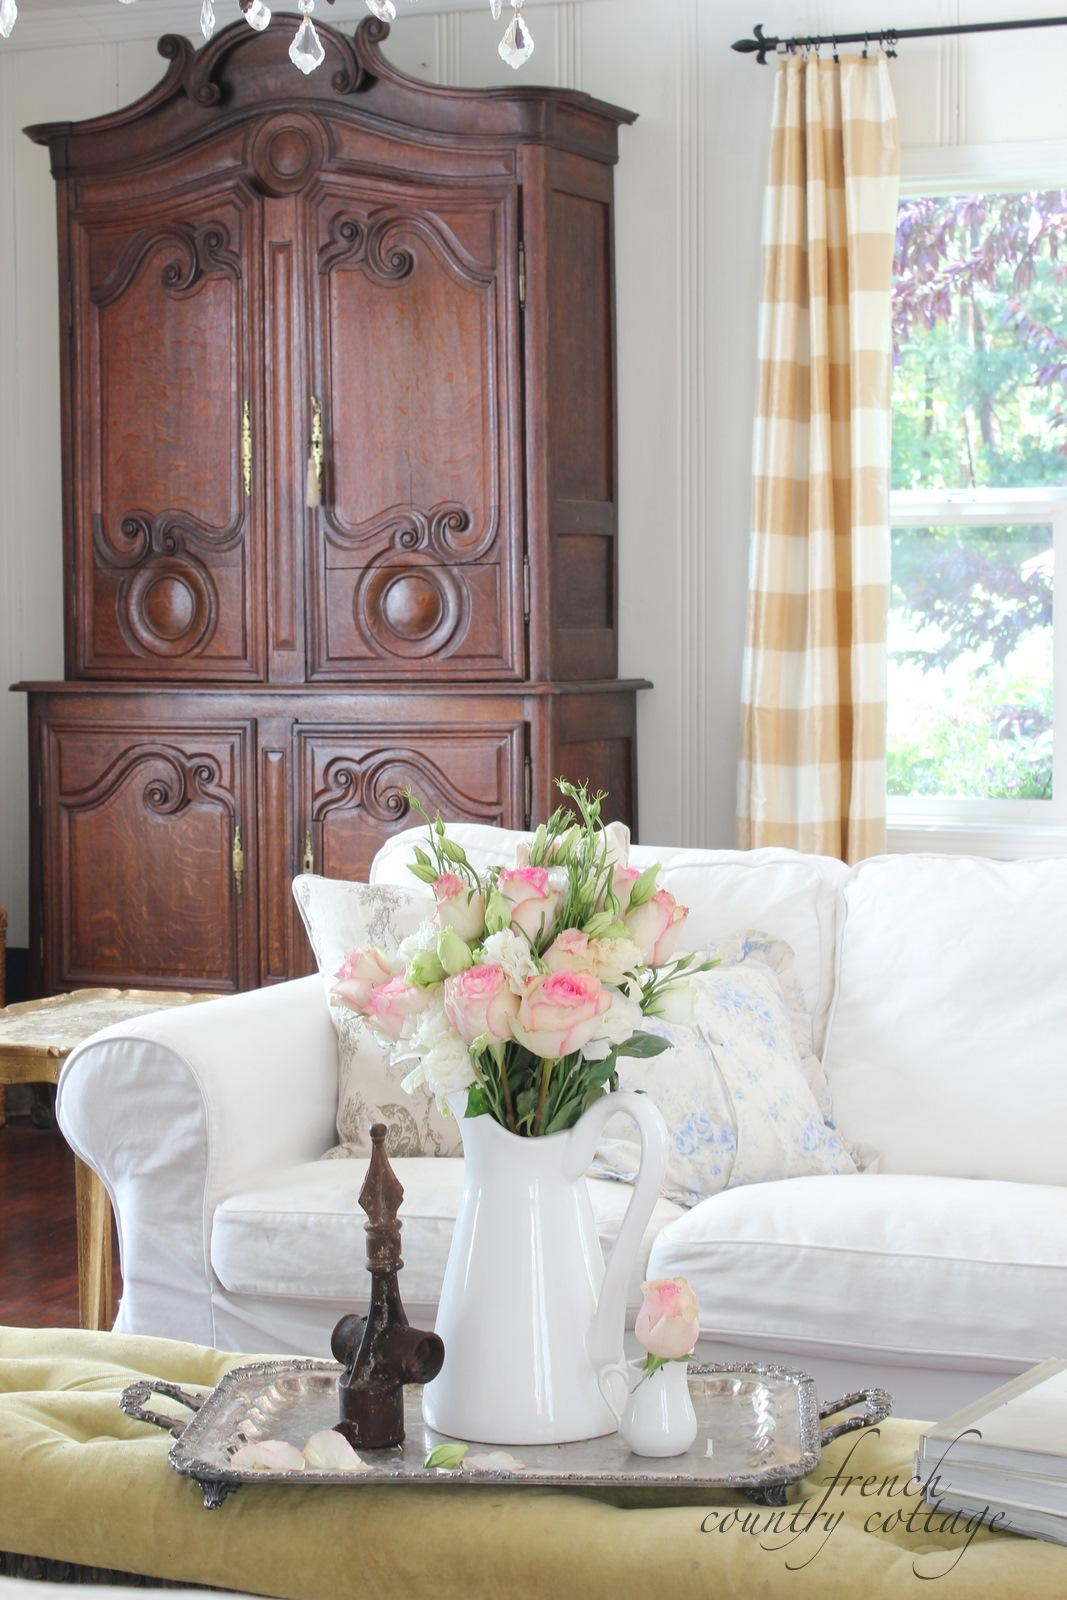 Cottage Style Sofas And Chairs – Fjellkjeden With Regard To Cottage Style Sofas And Chairs (View 16 of 20)